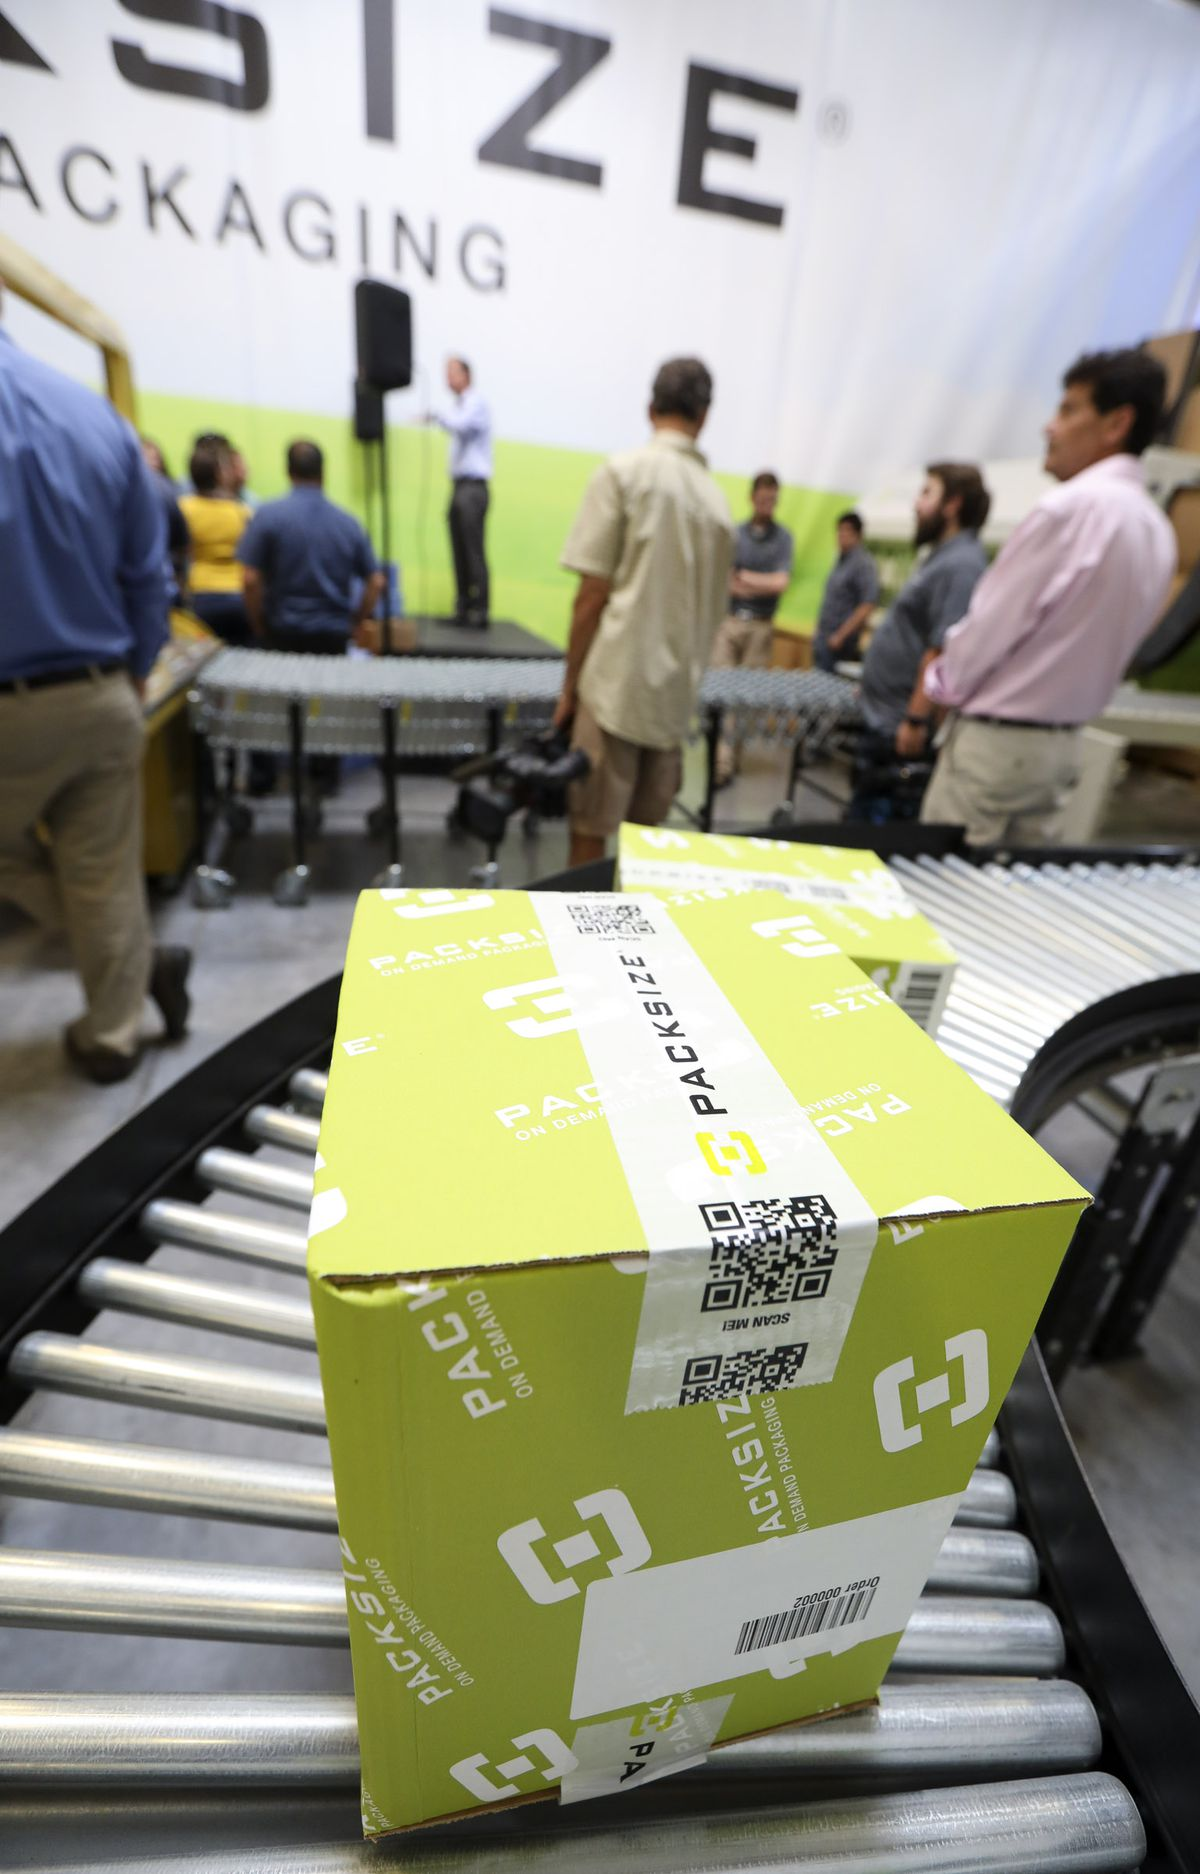 Representatives from the U.S. Department of Energy and Utah Clean Cities tour Packsize in Salt Lake City on Wednesday, Aug. 21, 2019, to learn how the company's right-size, on-demand packaging systems are upping the sustainability game, especially in a retail world that is increasingly delivery-based.